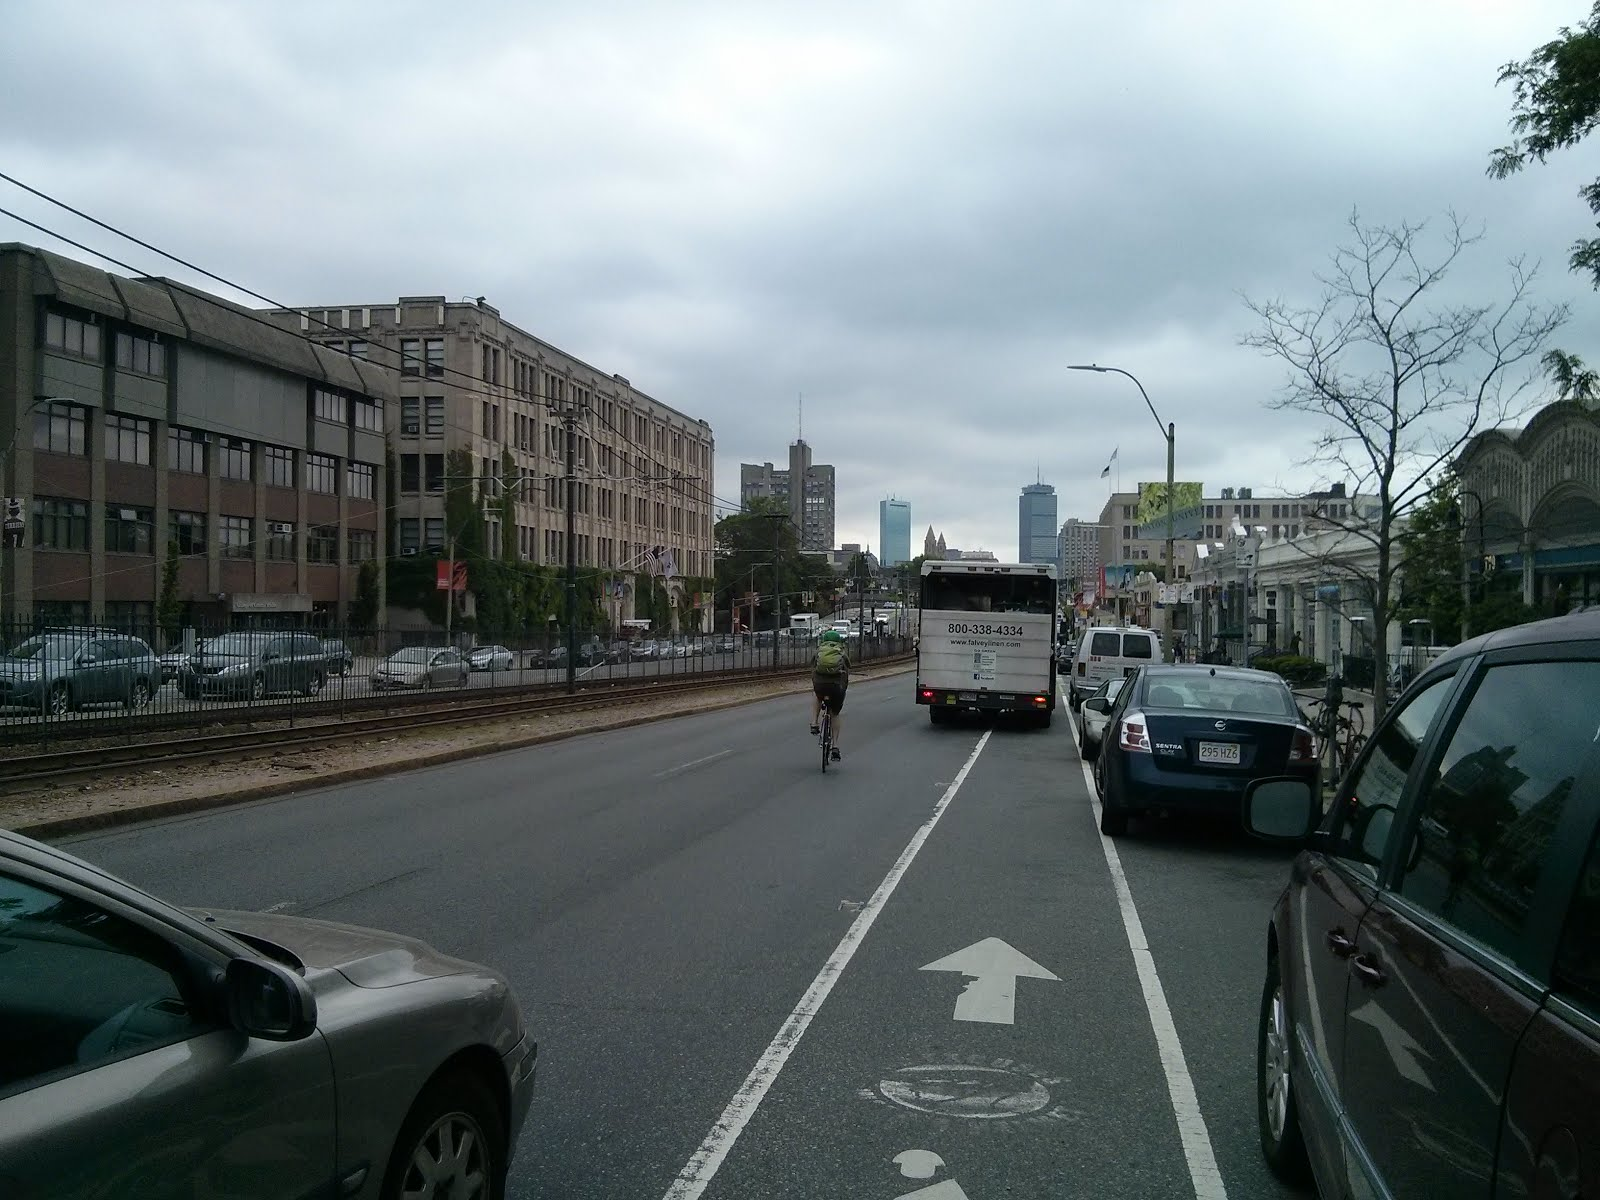 Typical bicycling conditions in existing Comm Ave phase 2A scope; not planned to be improved.